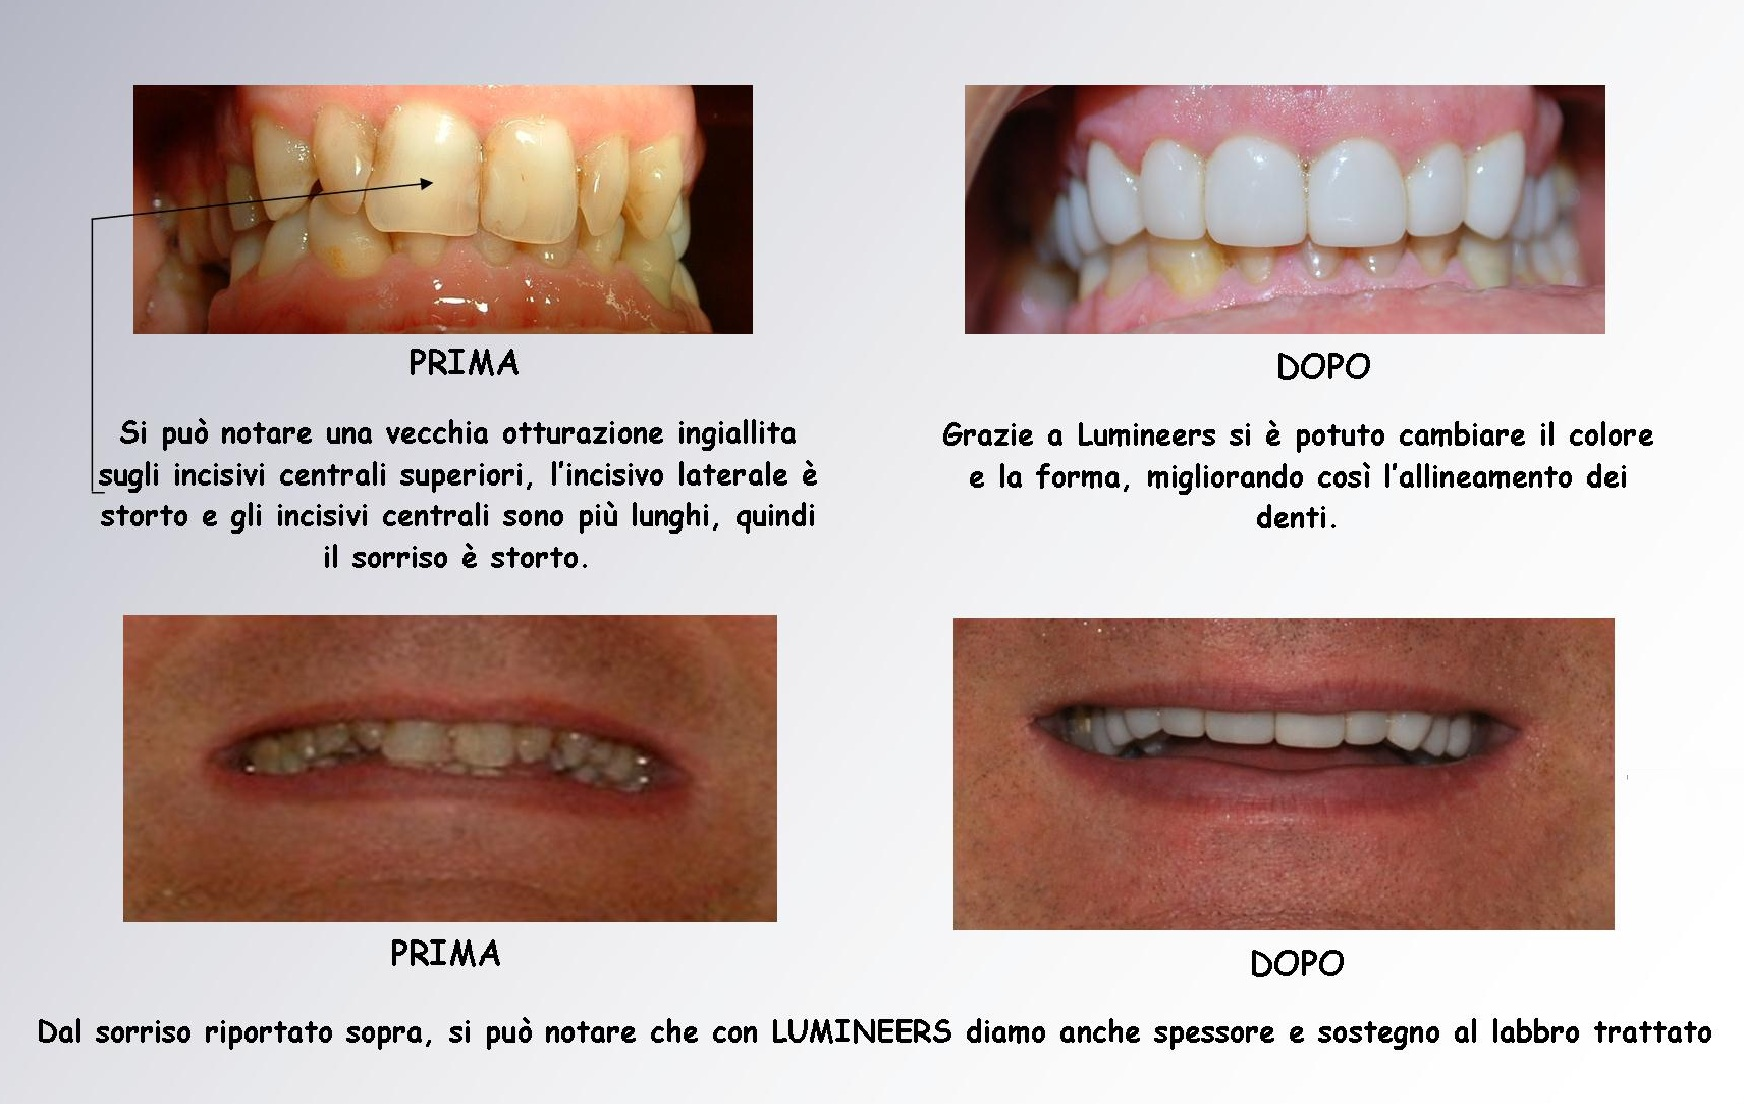 Faccette dentali: Lumineers